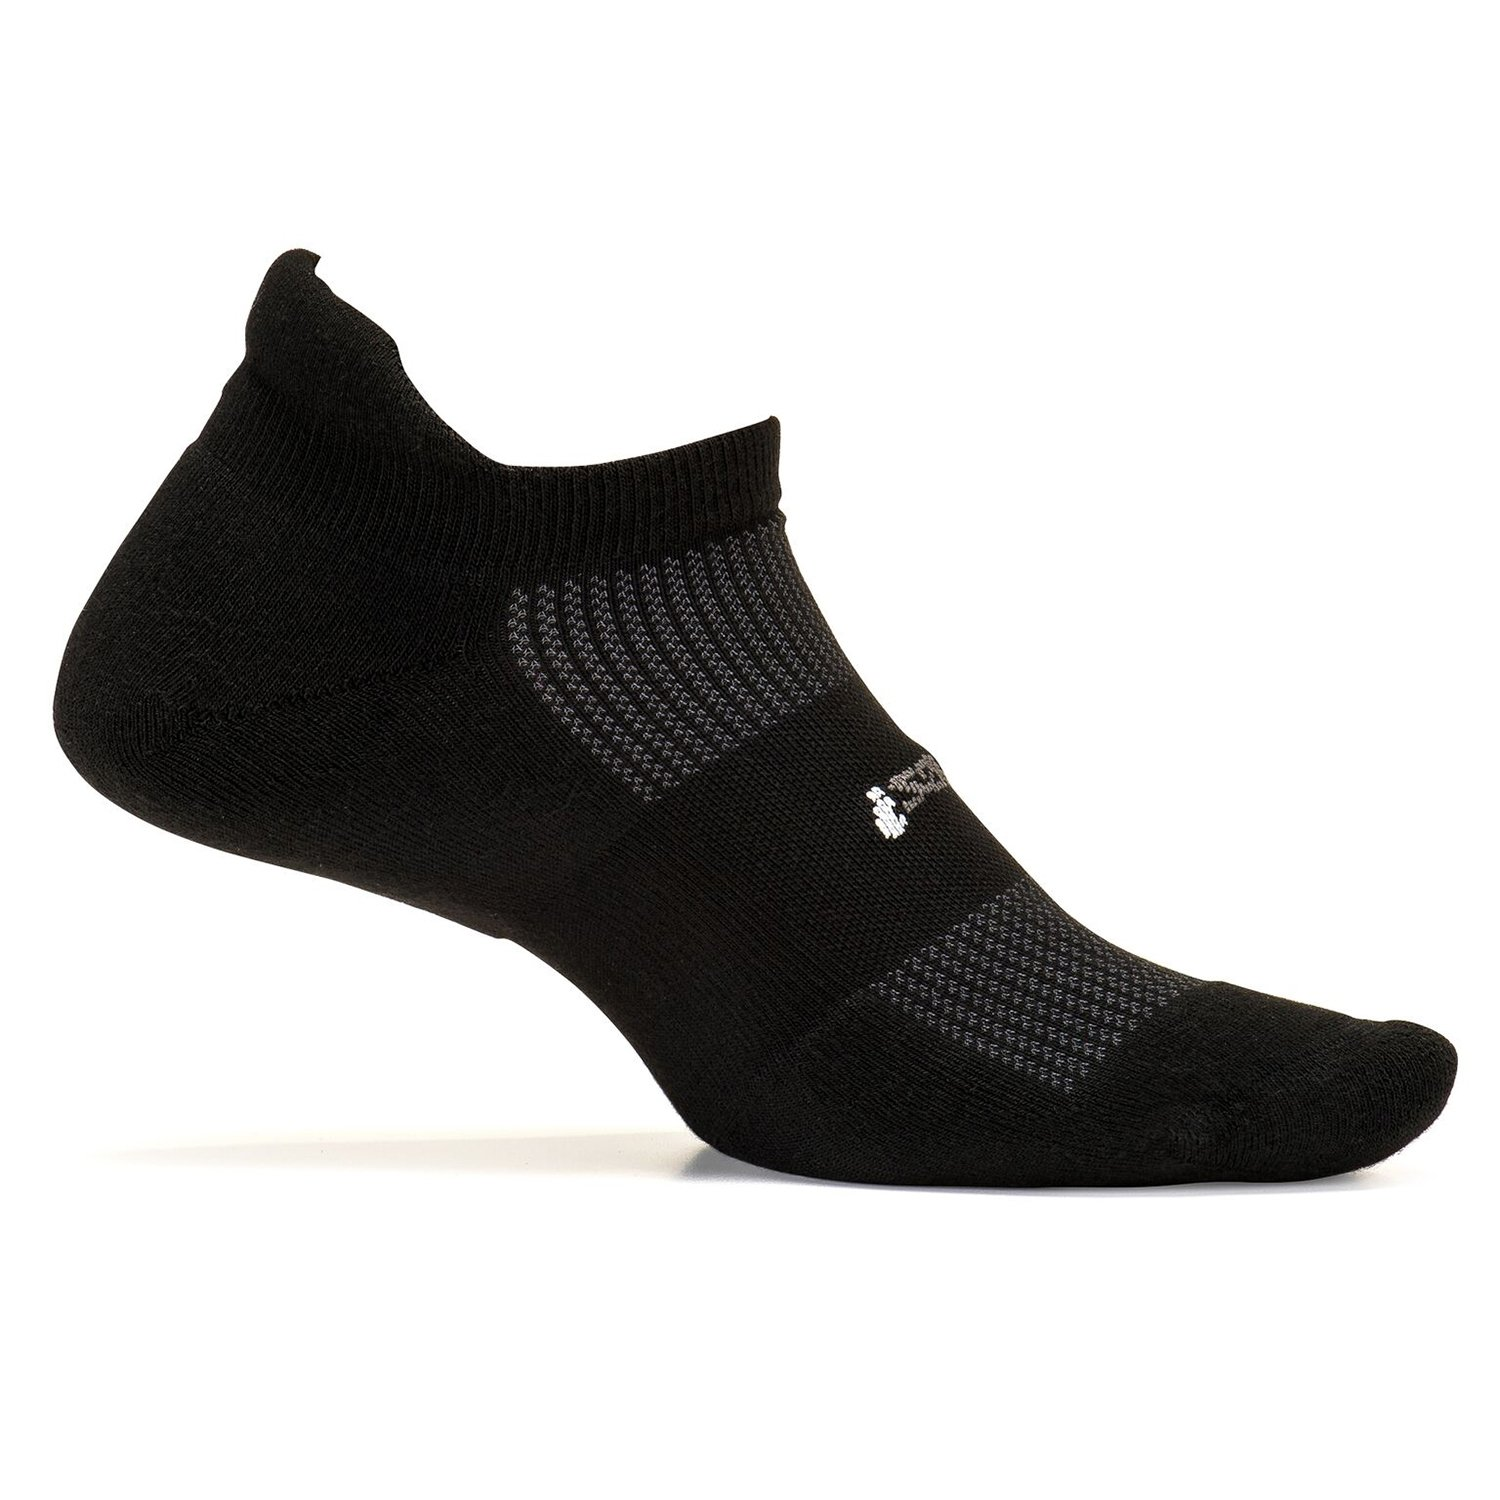 Feetures Running Calcetines - Elite Ultra Light - NO Show Tab: Amazon.es: Deportes y aire libre